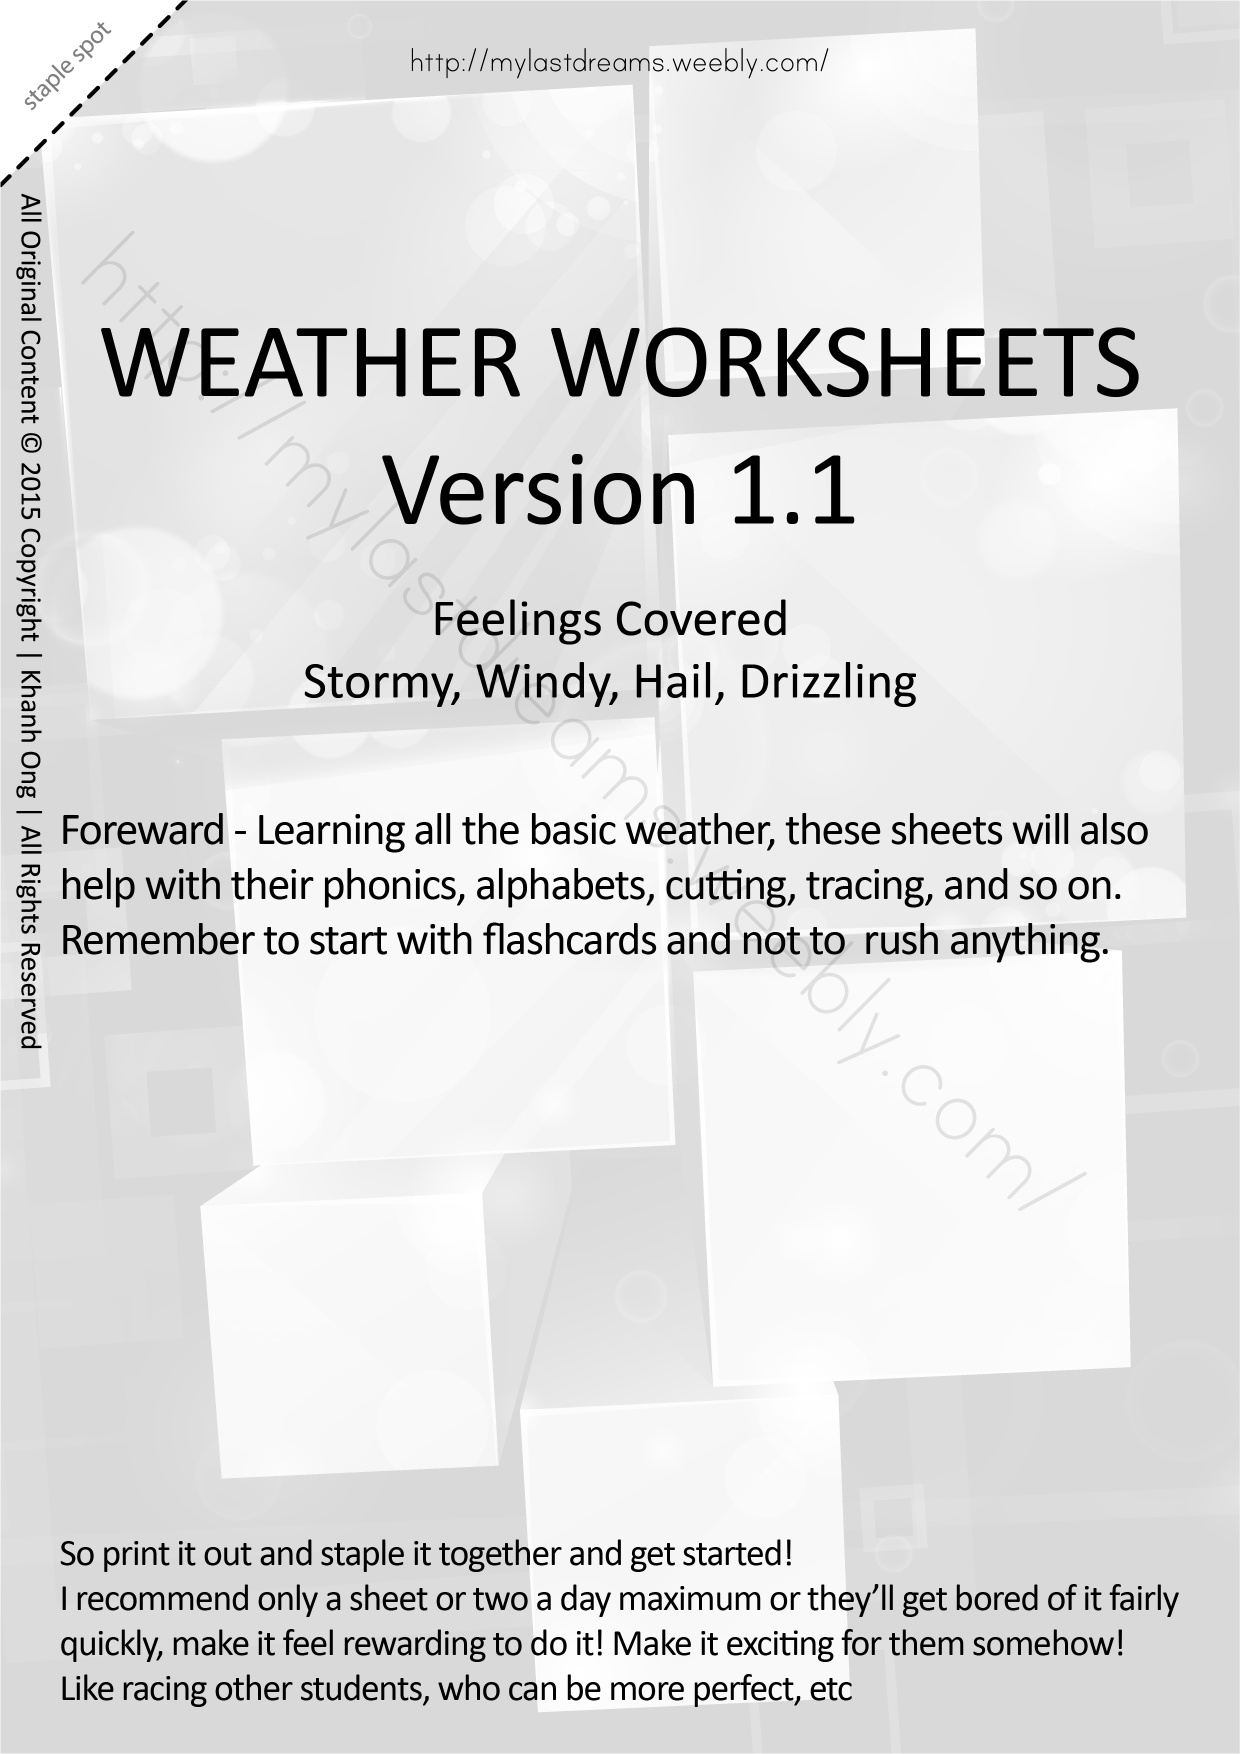 MLD - Basic Weather Worksheets - Part 2 - A4 Sized